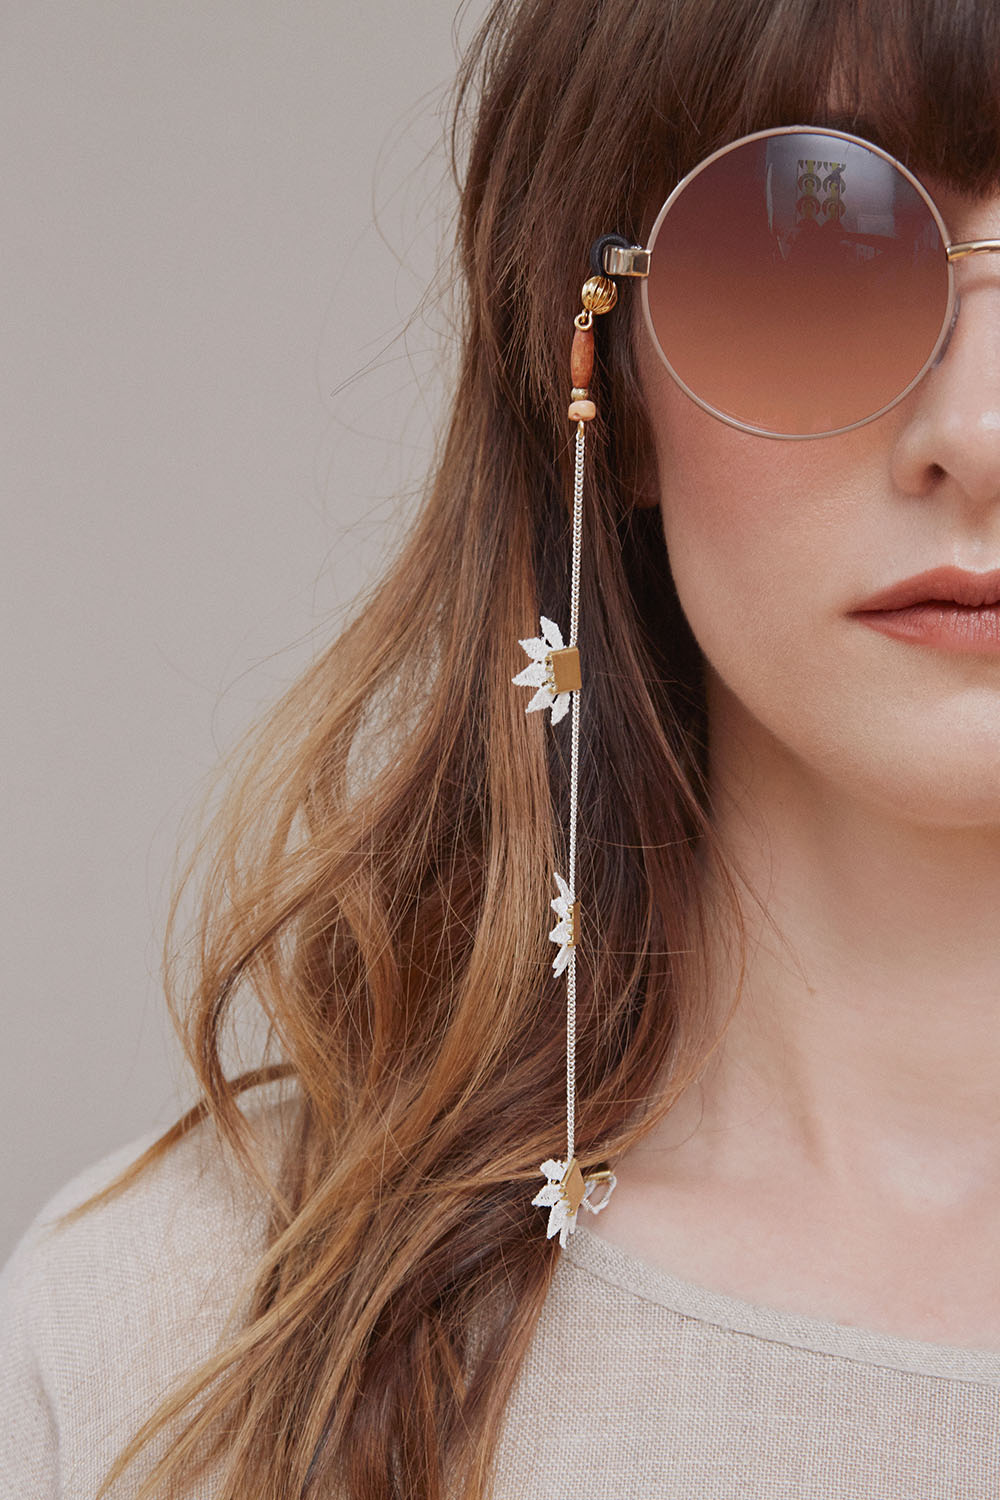 Pantai glasses chain (click here for details)